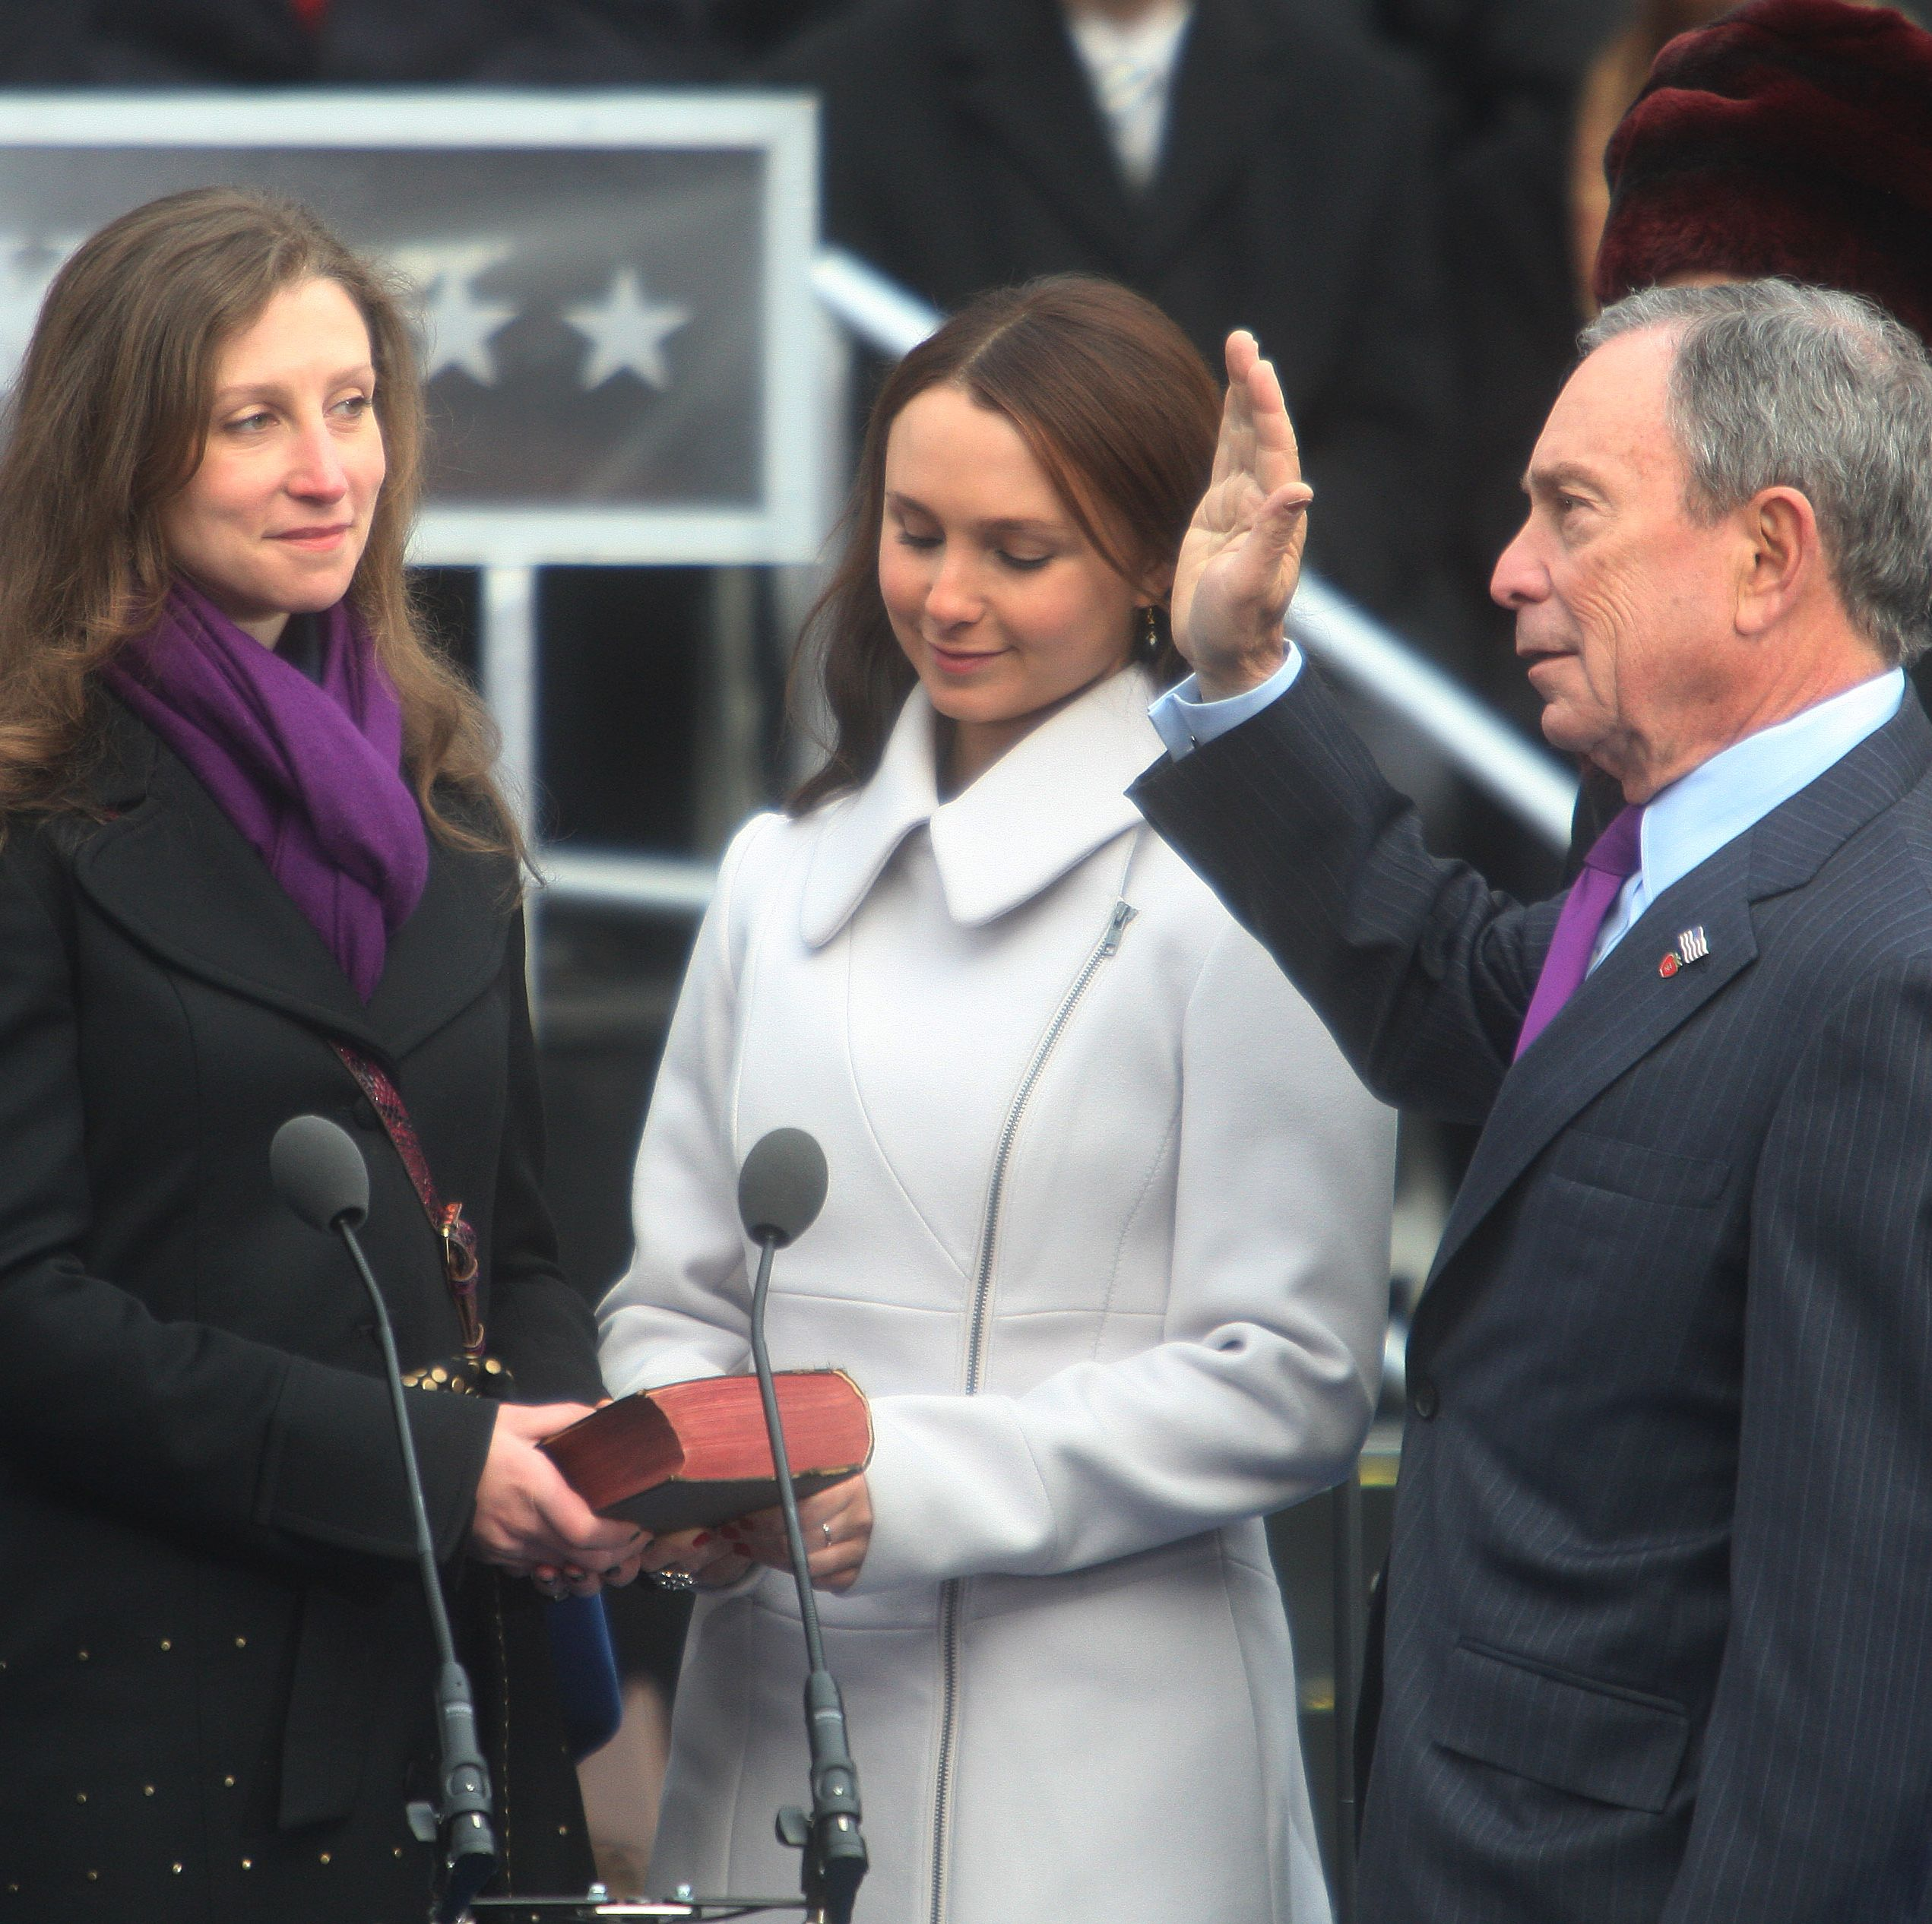 Michael Bloomberg Is Sworn In For Third Term As New York City Mayor